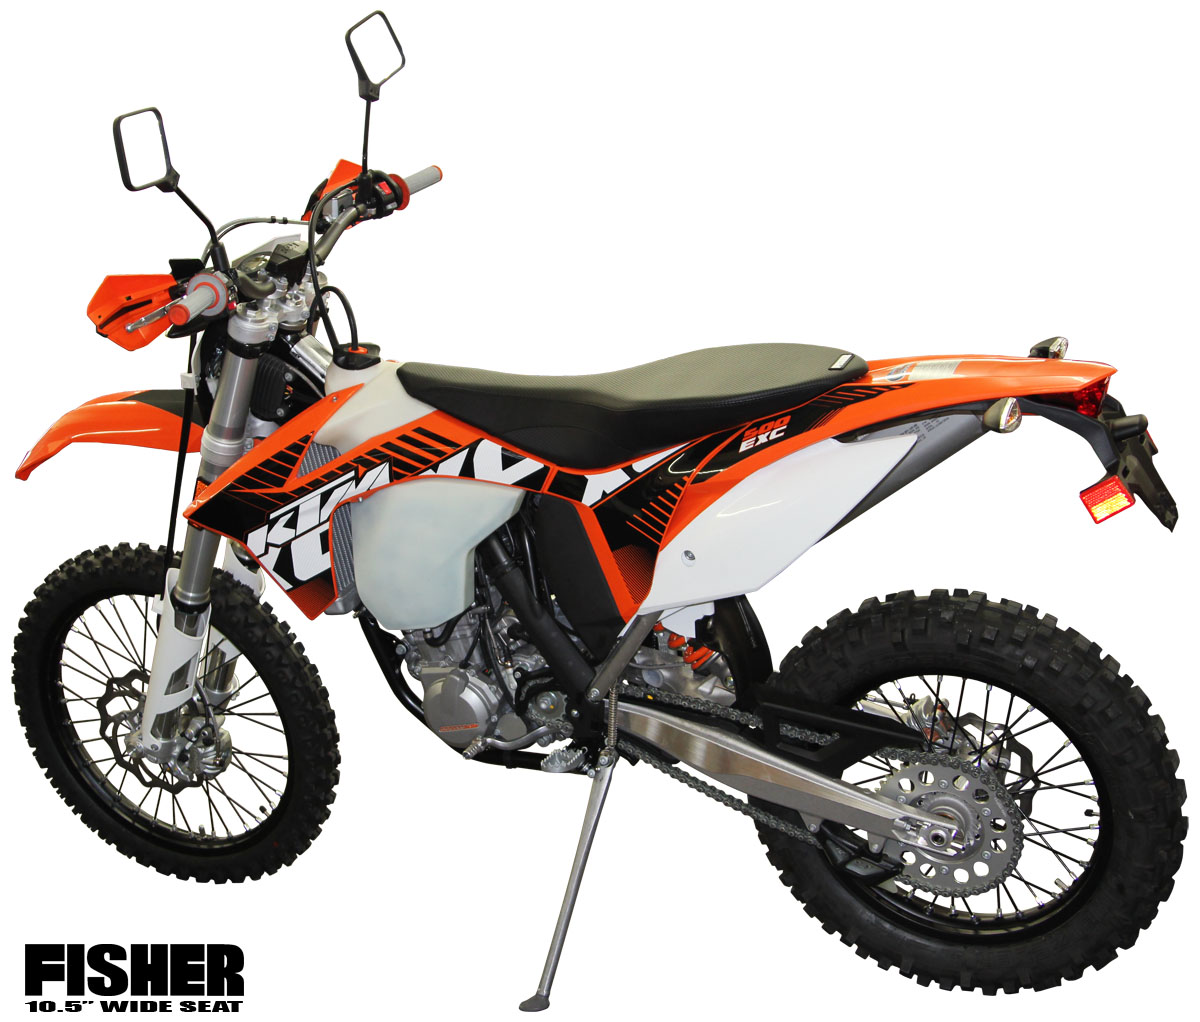 fisher seats - aftermarket ktm seats $299.99 - 350 450 500 exc xc